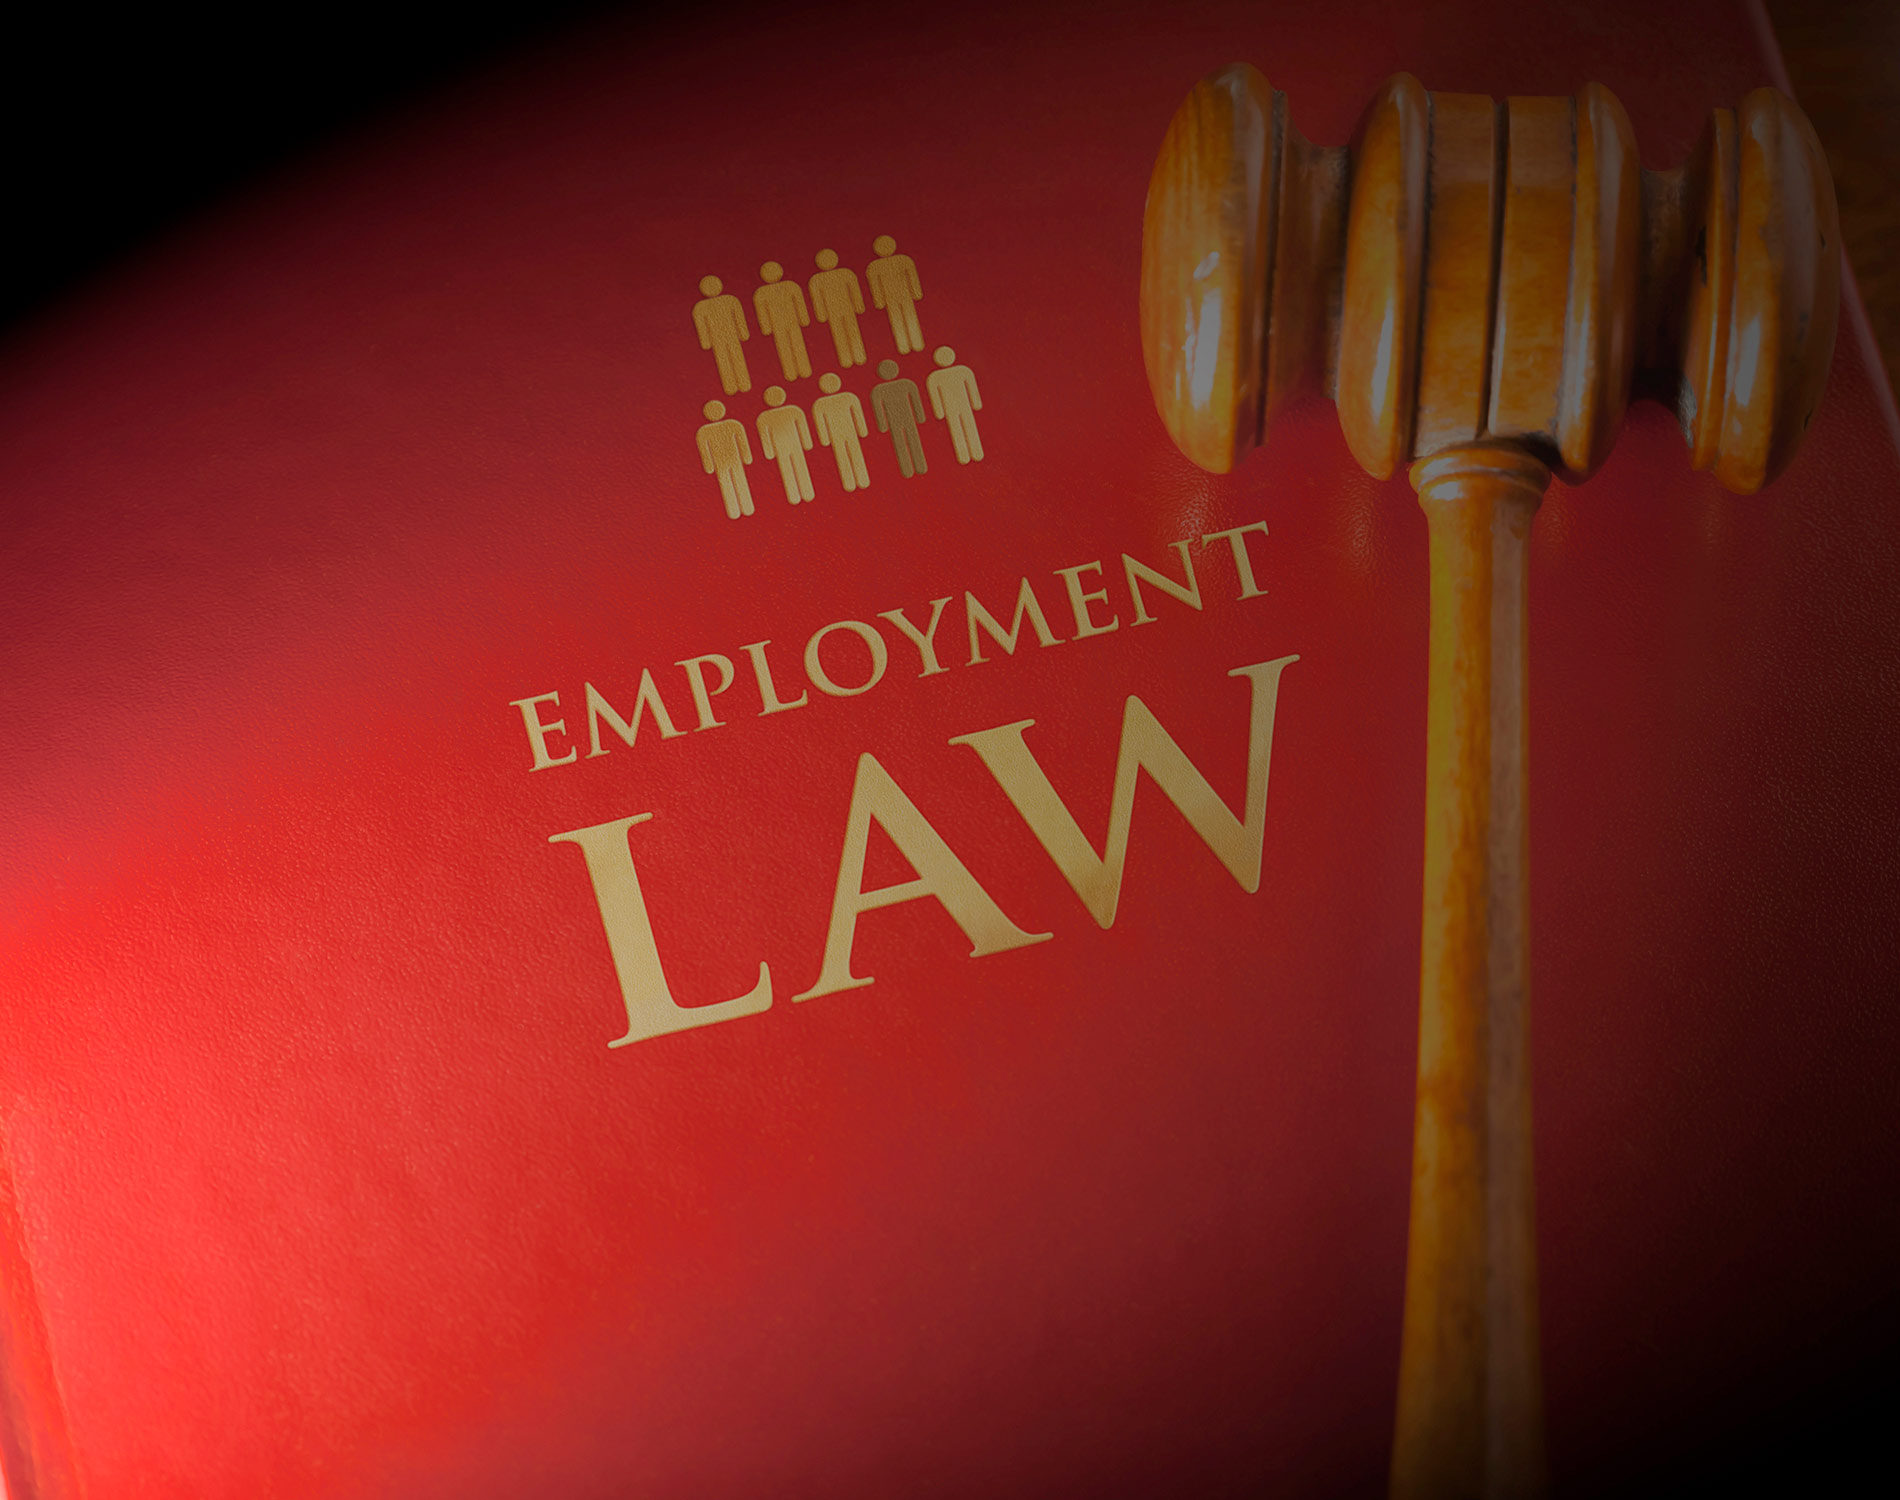 Child-Support and Employment Change